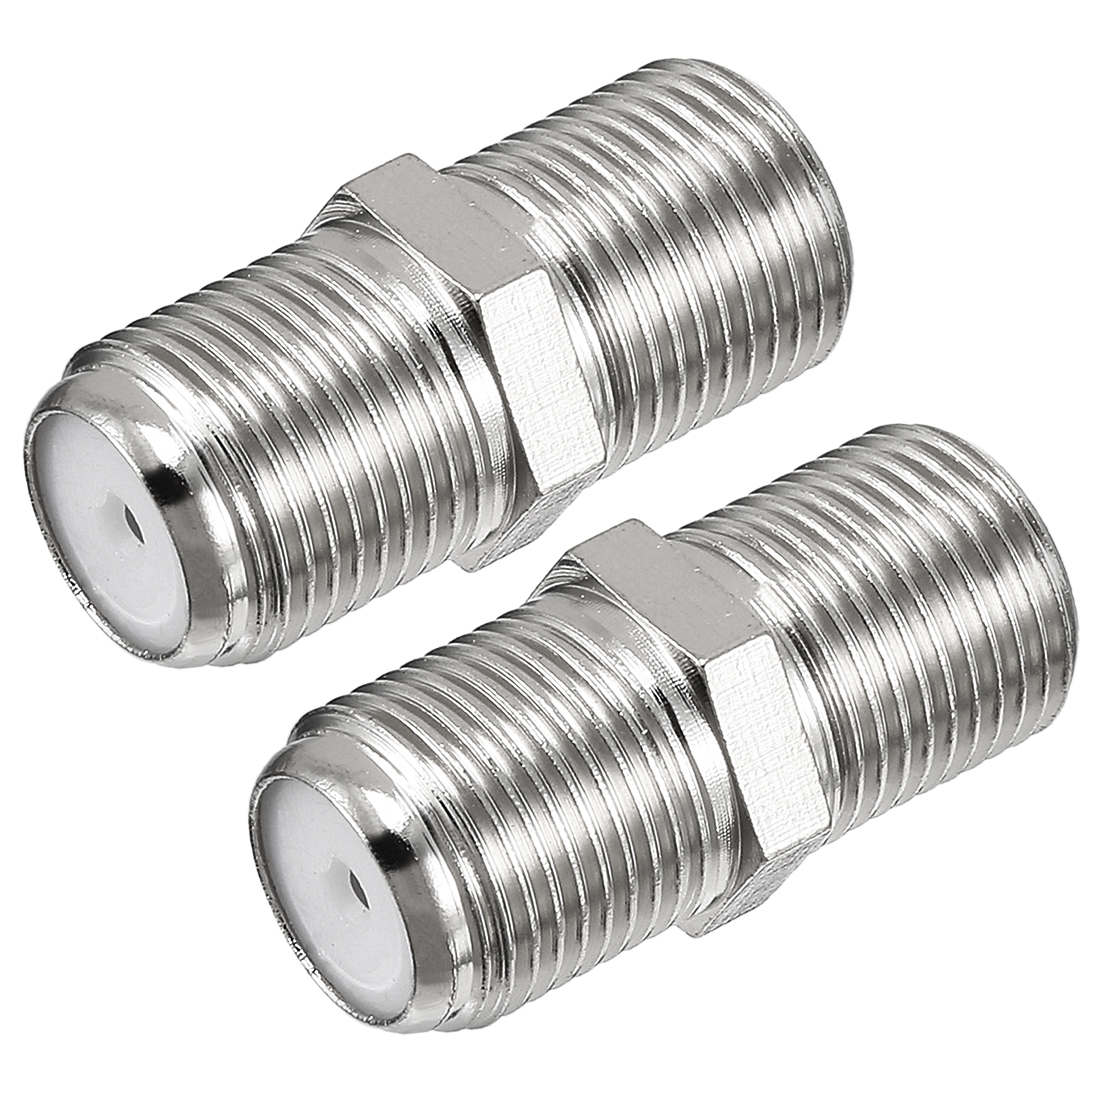 2 Pcs Silver Tone BSP F Female to F Female Jack RF Coaxial Adapter Connector